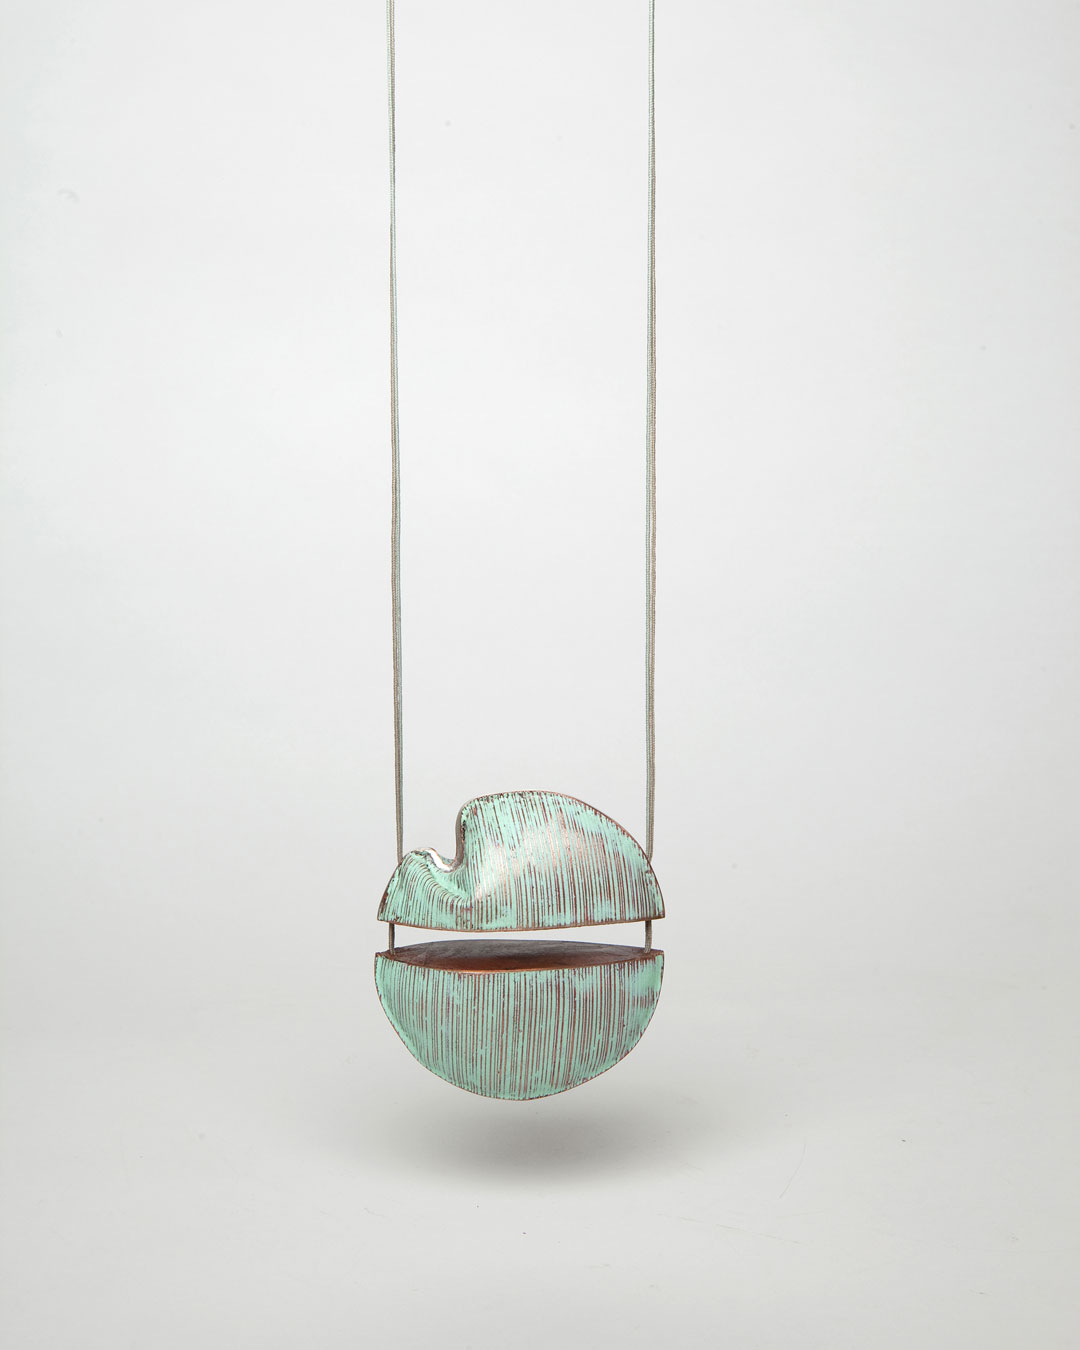 Nicole Beck, Green Planet, 2018, pendant; copper, enamel, silver, thread, 85 x 85 x 40 mm, €1650